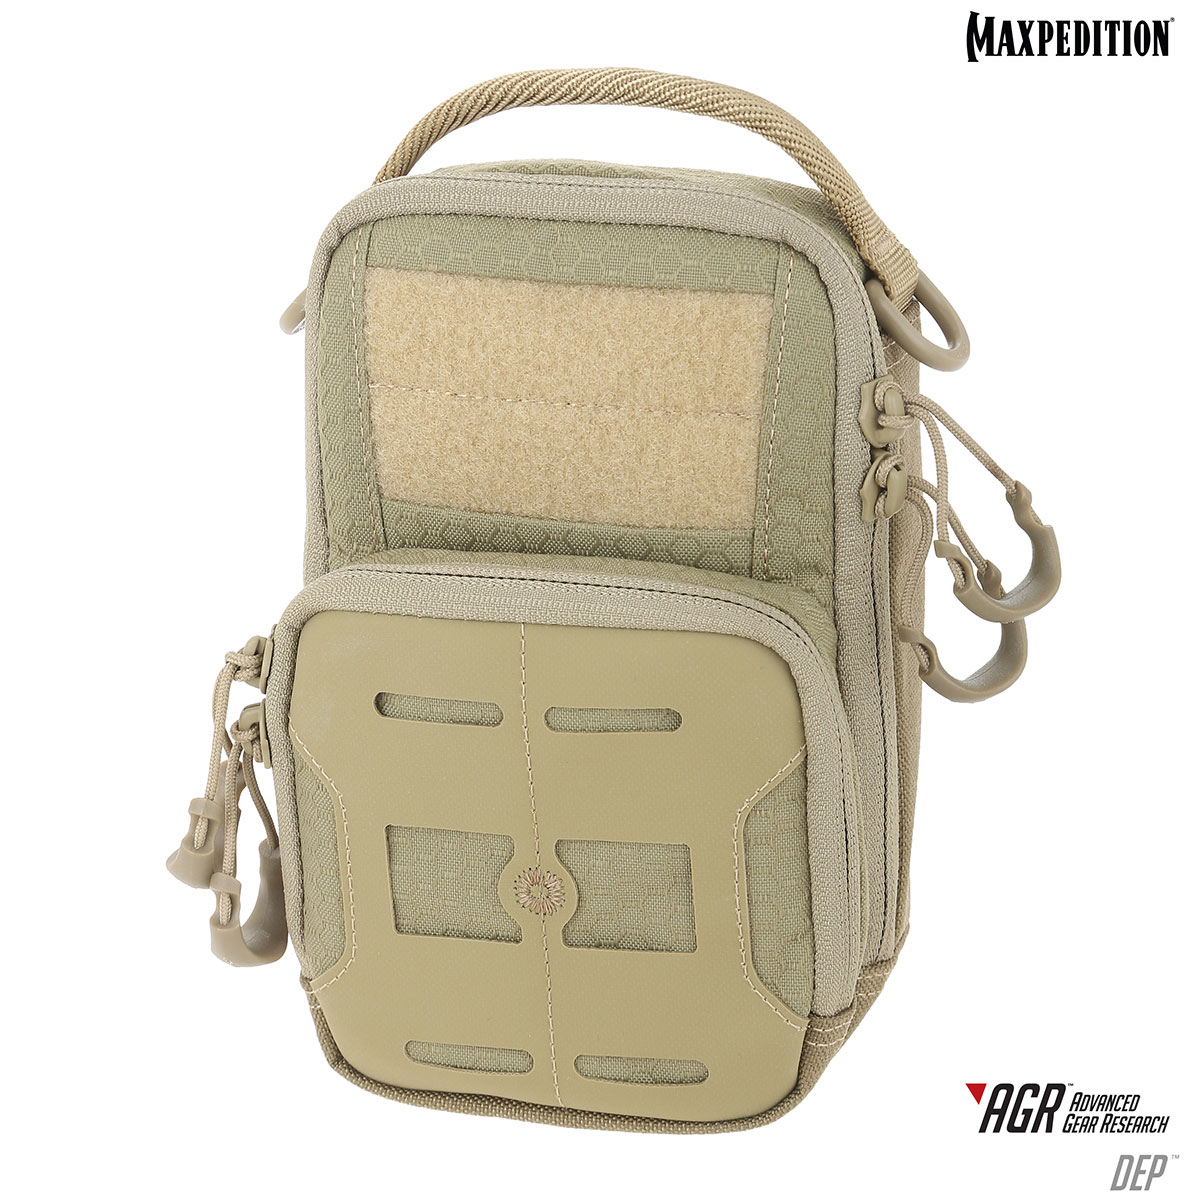 Maxpedition DEP™ Daily Essentials Pouch Tan